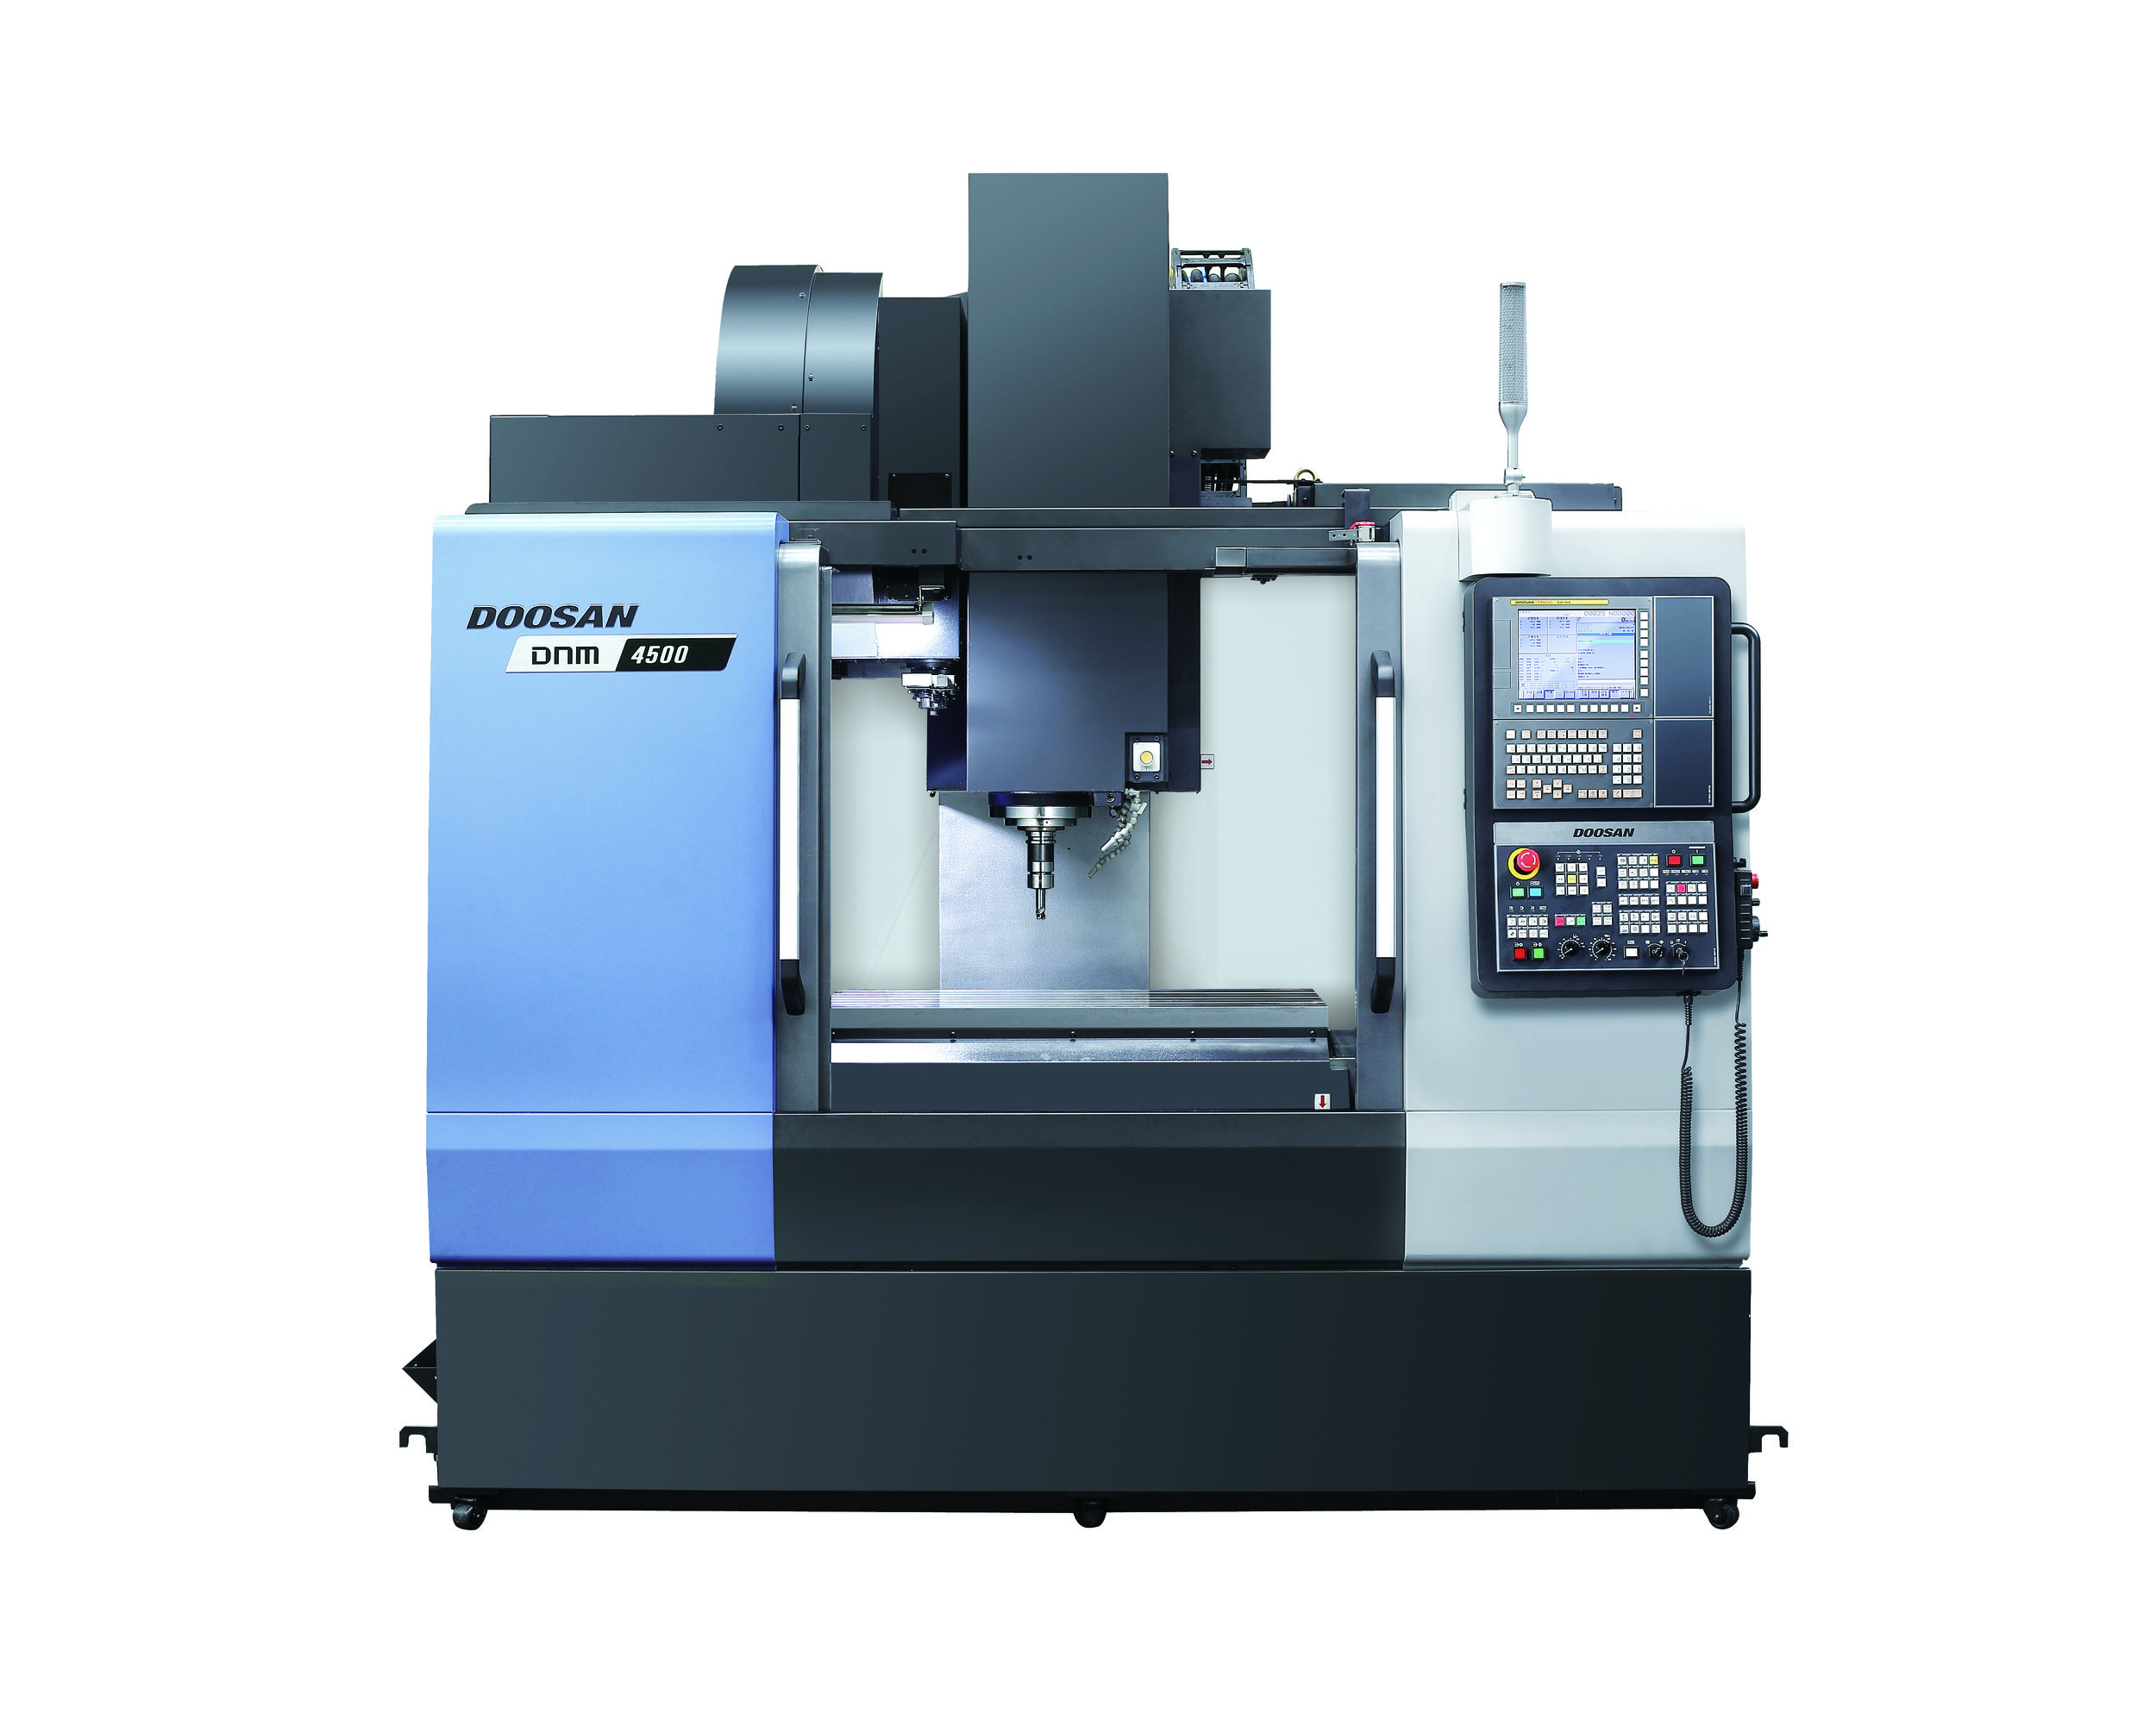 millingwith 4th axis - Standard and 4th axis milling on our Doosan DNM4500 - this high precision machine is optimised with the use of Edgecam programming software